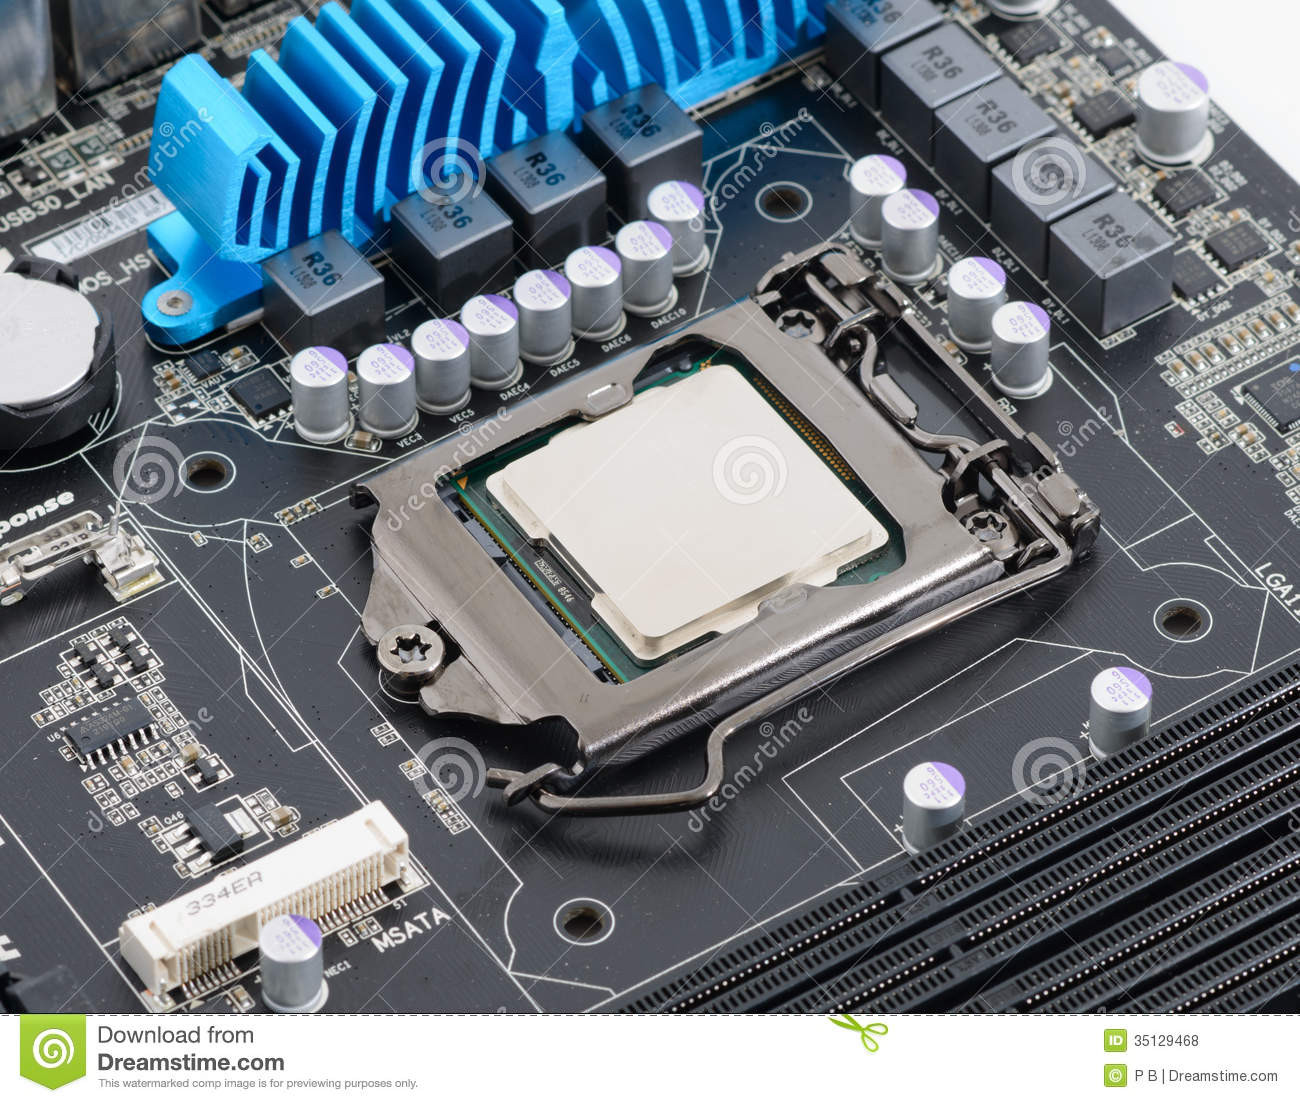 how to change the cpu in a computer